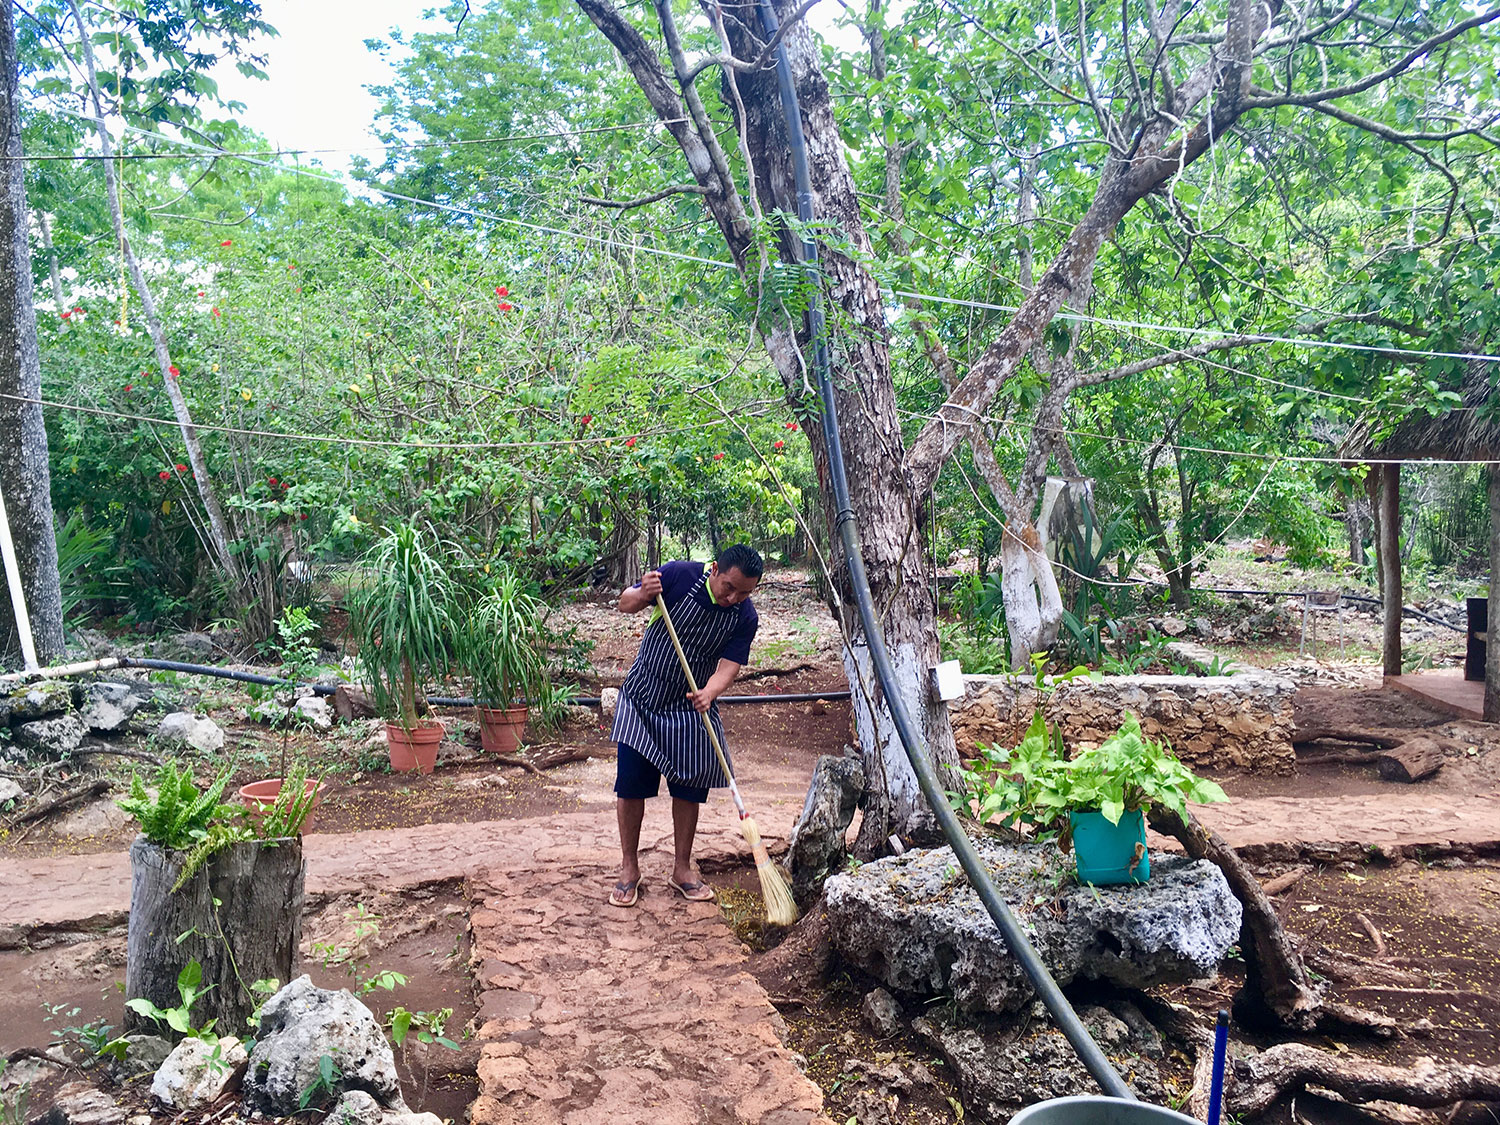 The staff clean the jungle garden all day long.